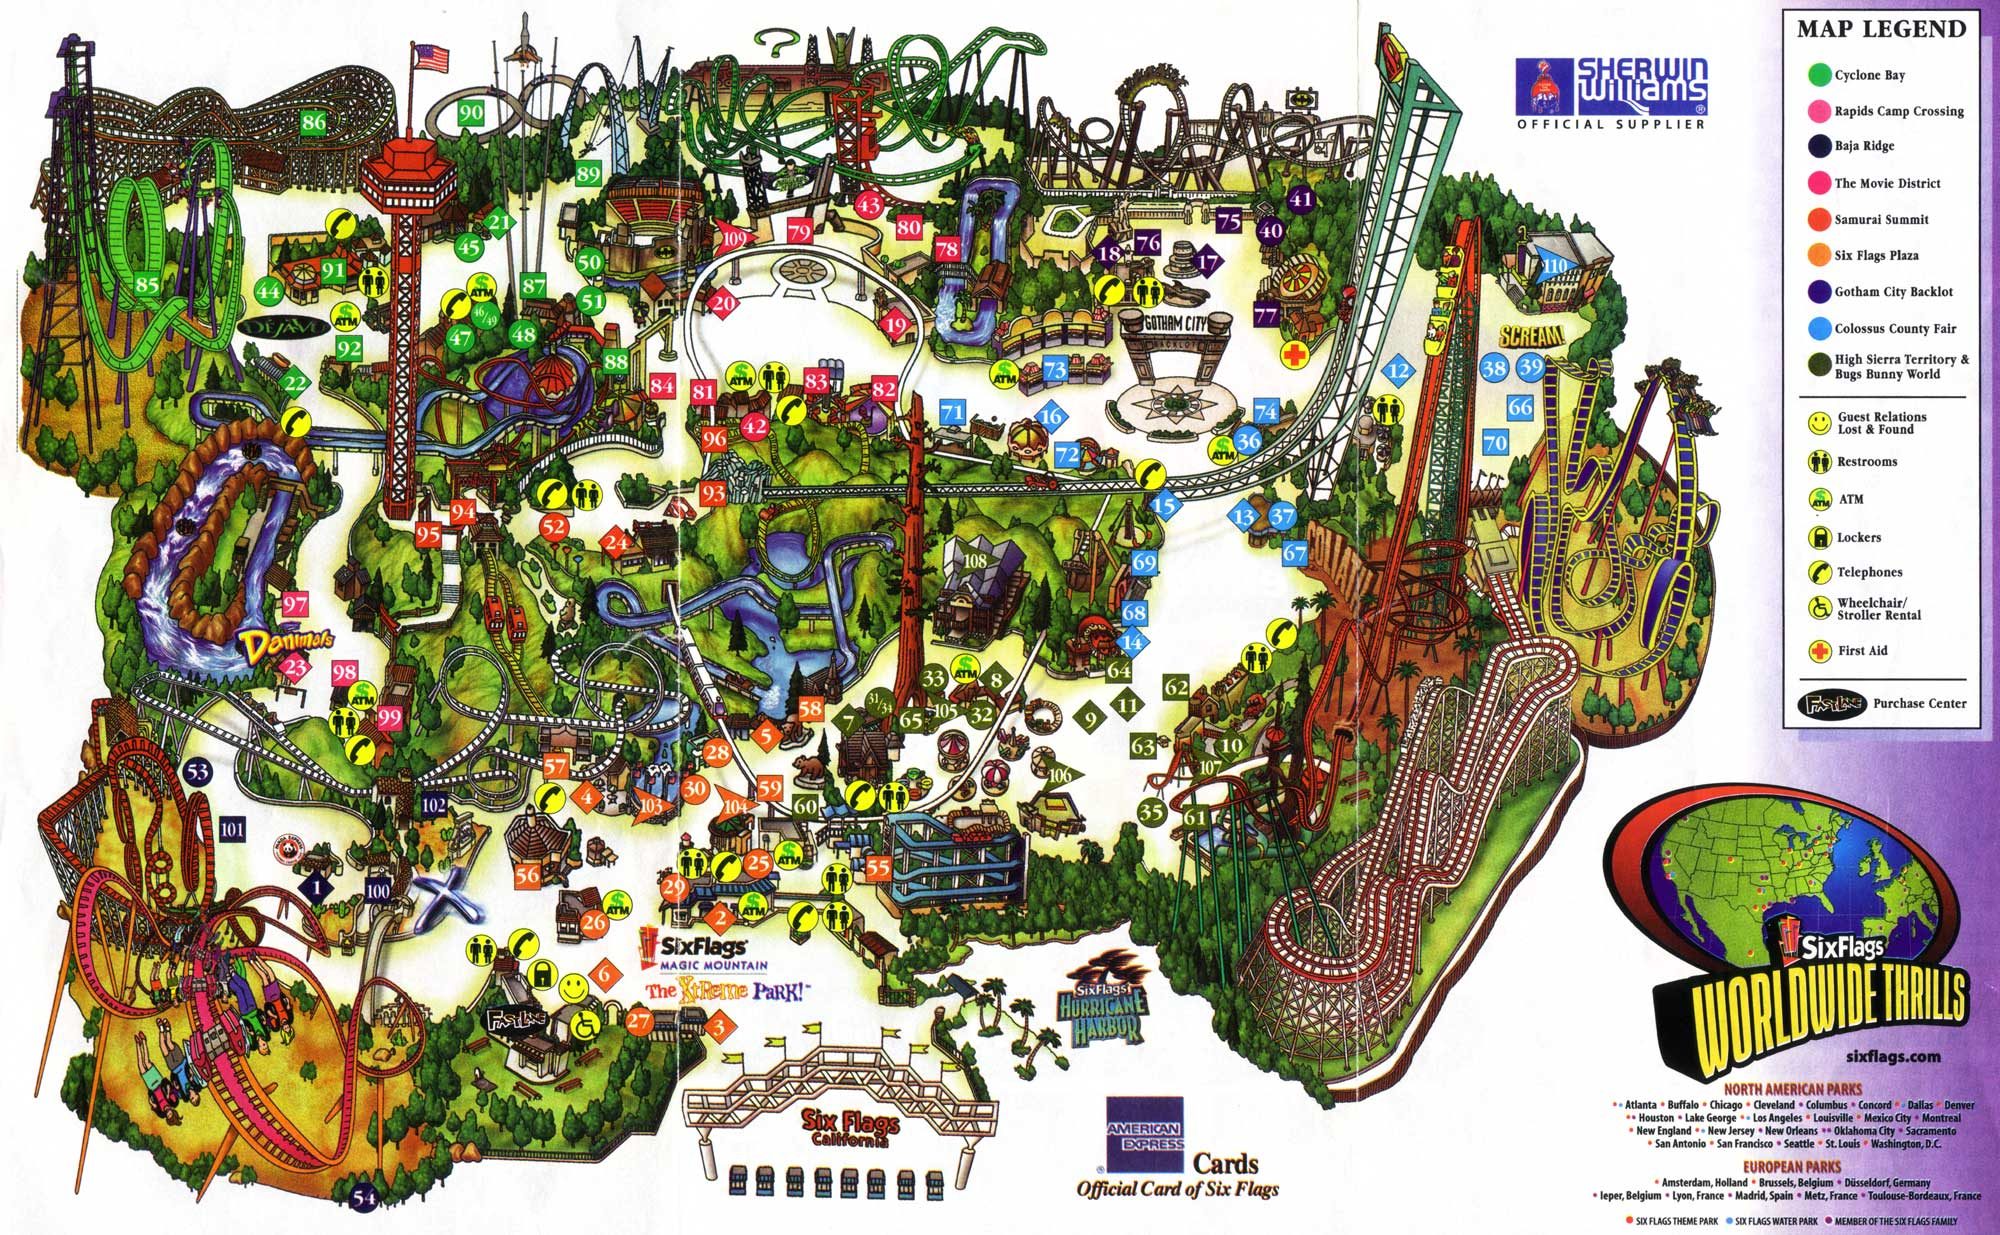 Designing Great Experiences: The Gap Between Activities — UX ... on woodley park map, cedar point park map, red mountain park map, hurricane harbor valencia map, six flags park map, point reyes park map, six flags valencia map, san francisco park map, mammoth mountain park map, magic park california, copper mountain park map, six flags new england map, magic midway map, san diego park map,